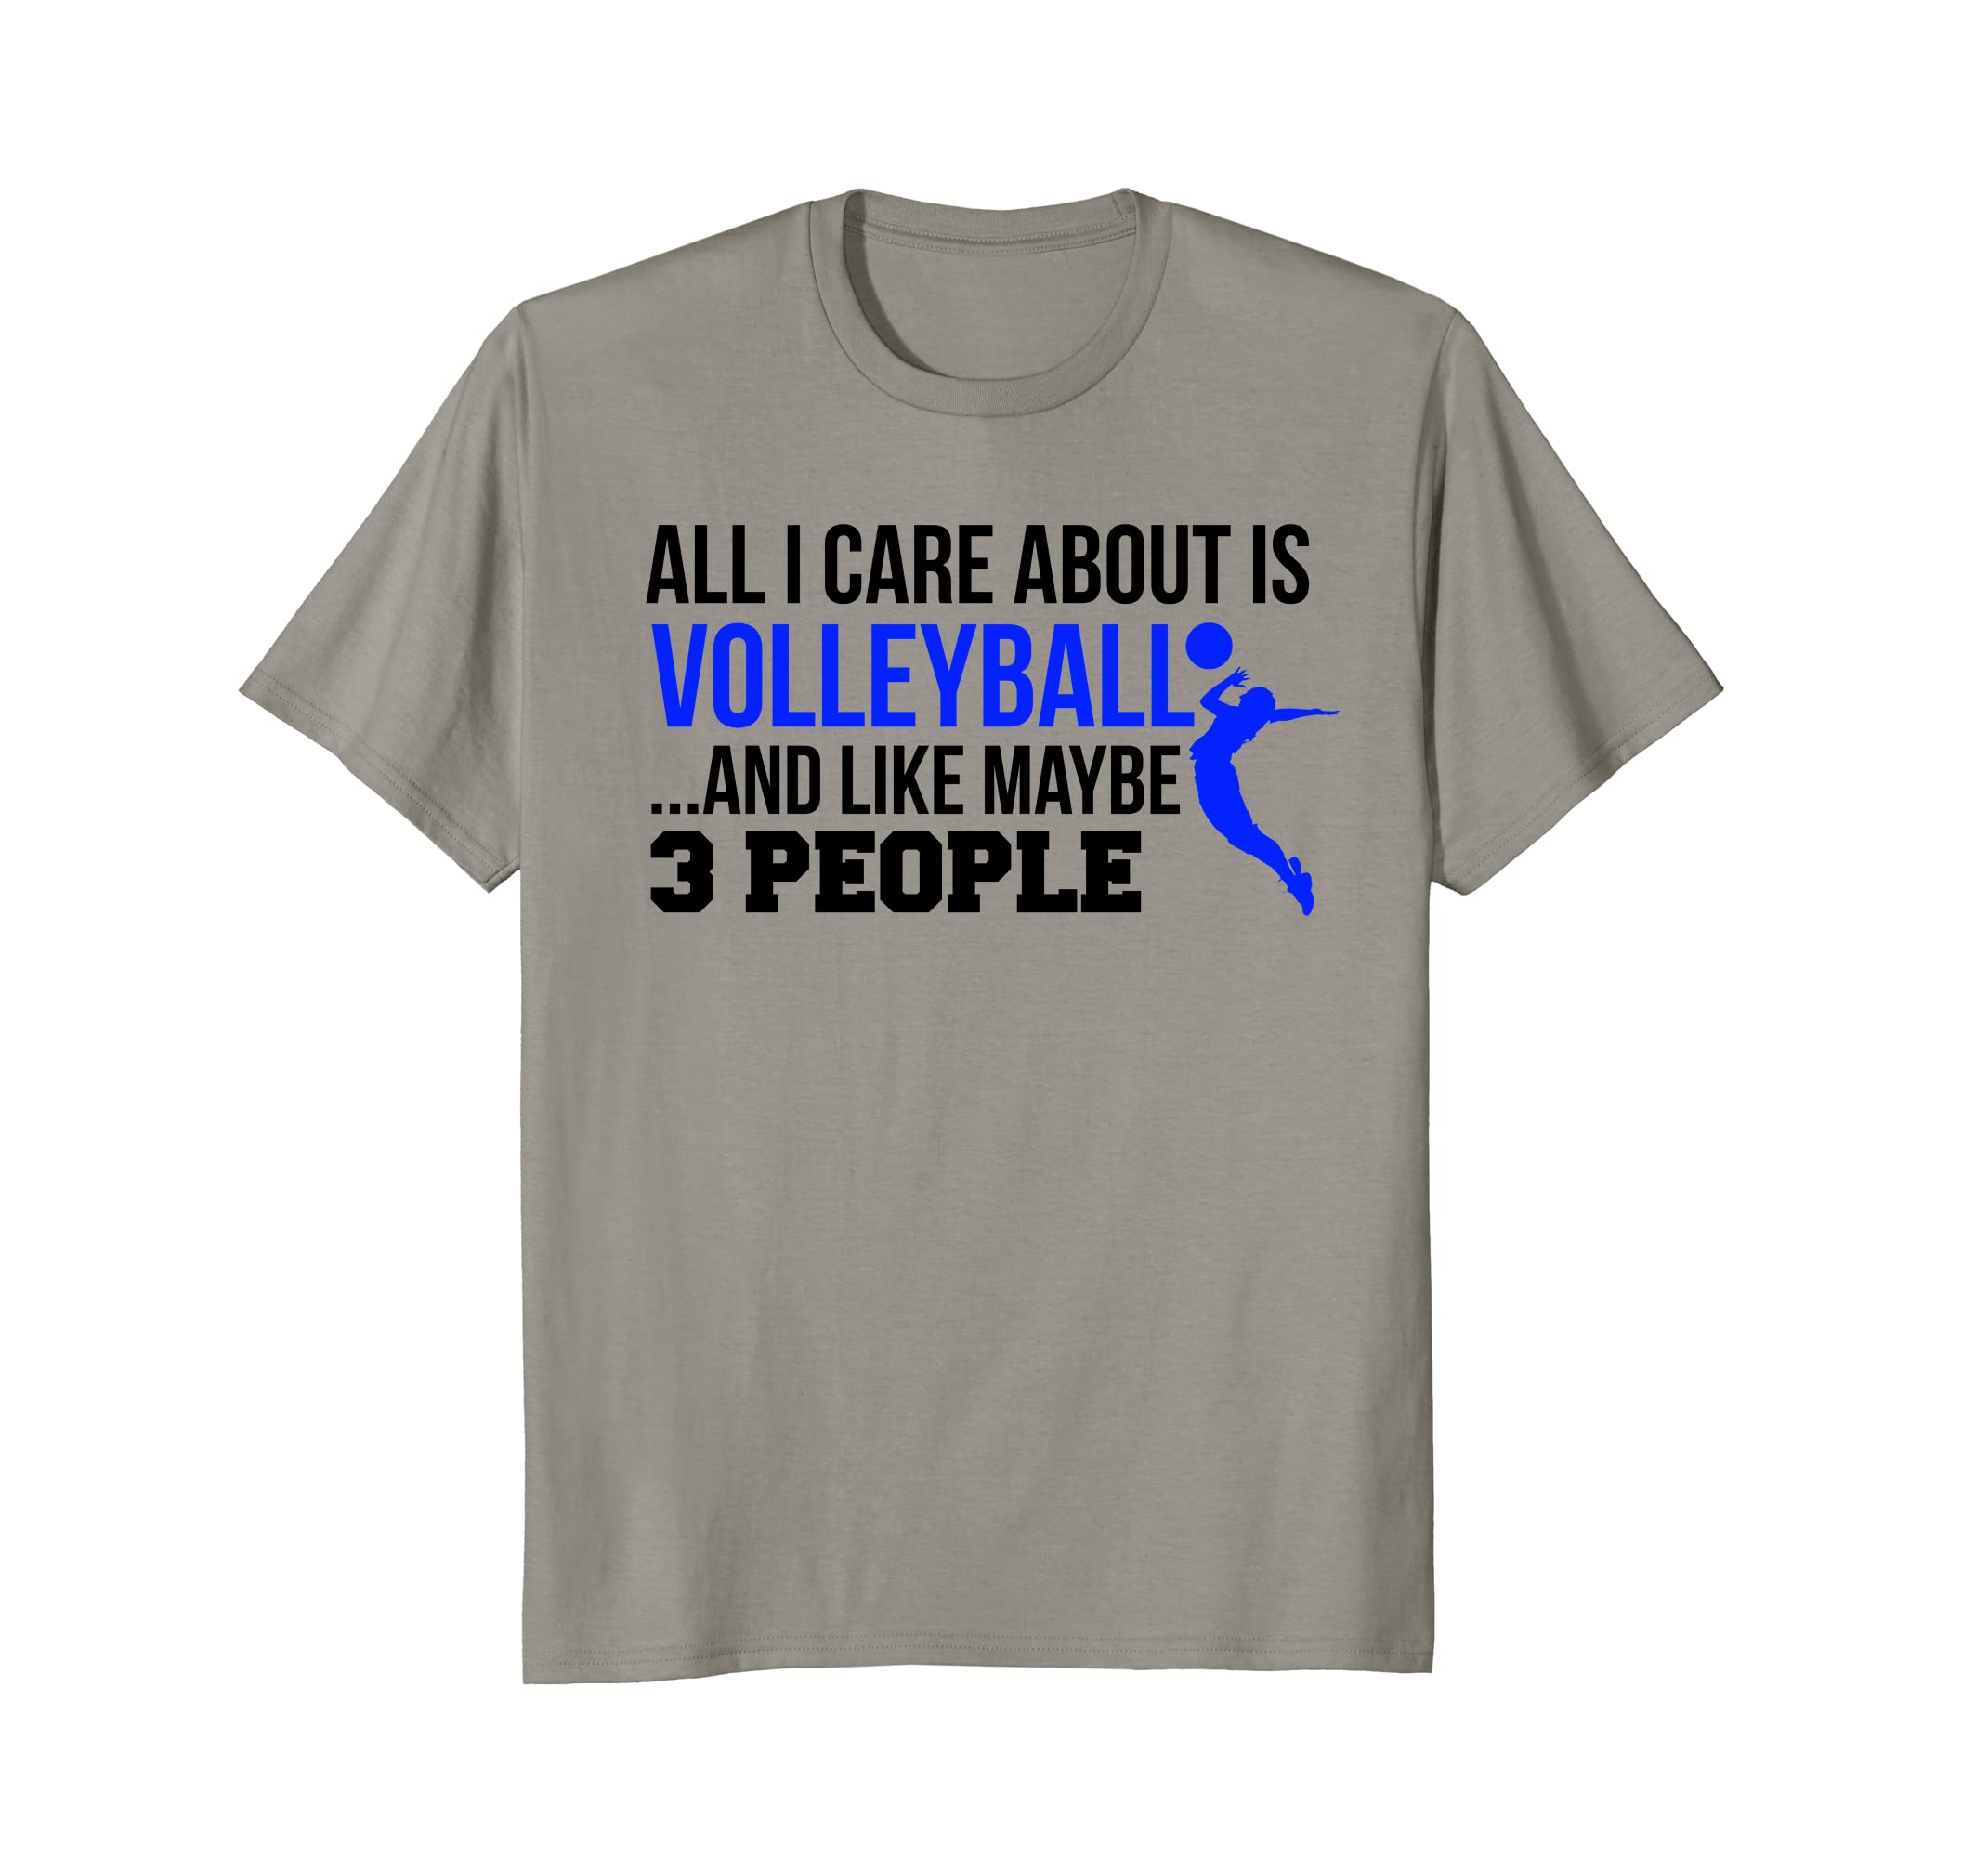 7f1900380 Amazon.com: Cute College Volleyball T-Shirt For Teen Girls and Women:  Clothing